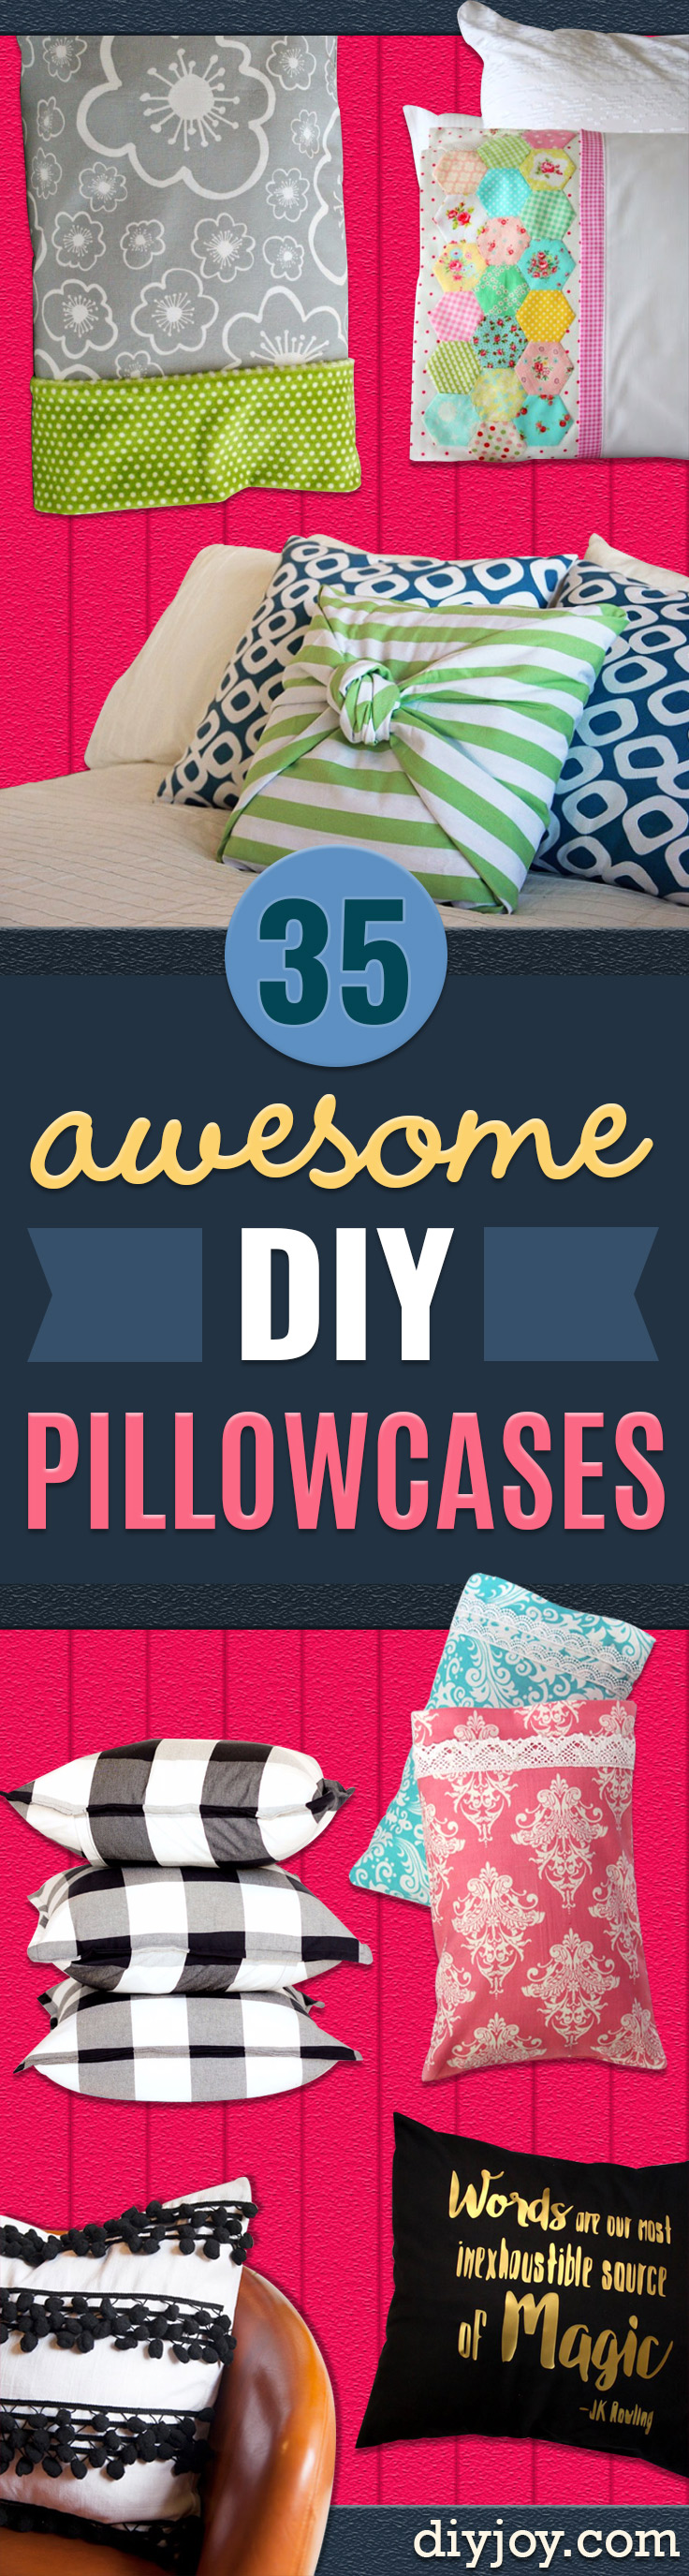 DIY Pillowcases - Easy Sewing Projects for Pillows - Bedroom and Home Decor Ideas - Sewing Patterns and Tutorials - No Sew Ideas - DIY Projects and Crafts for Women